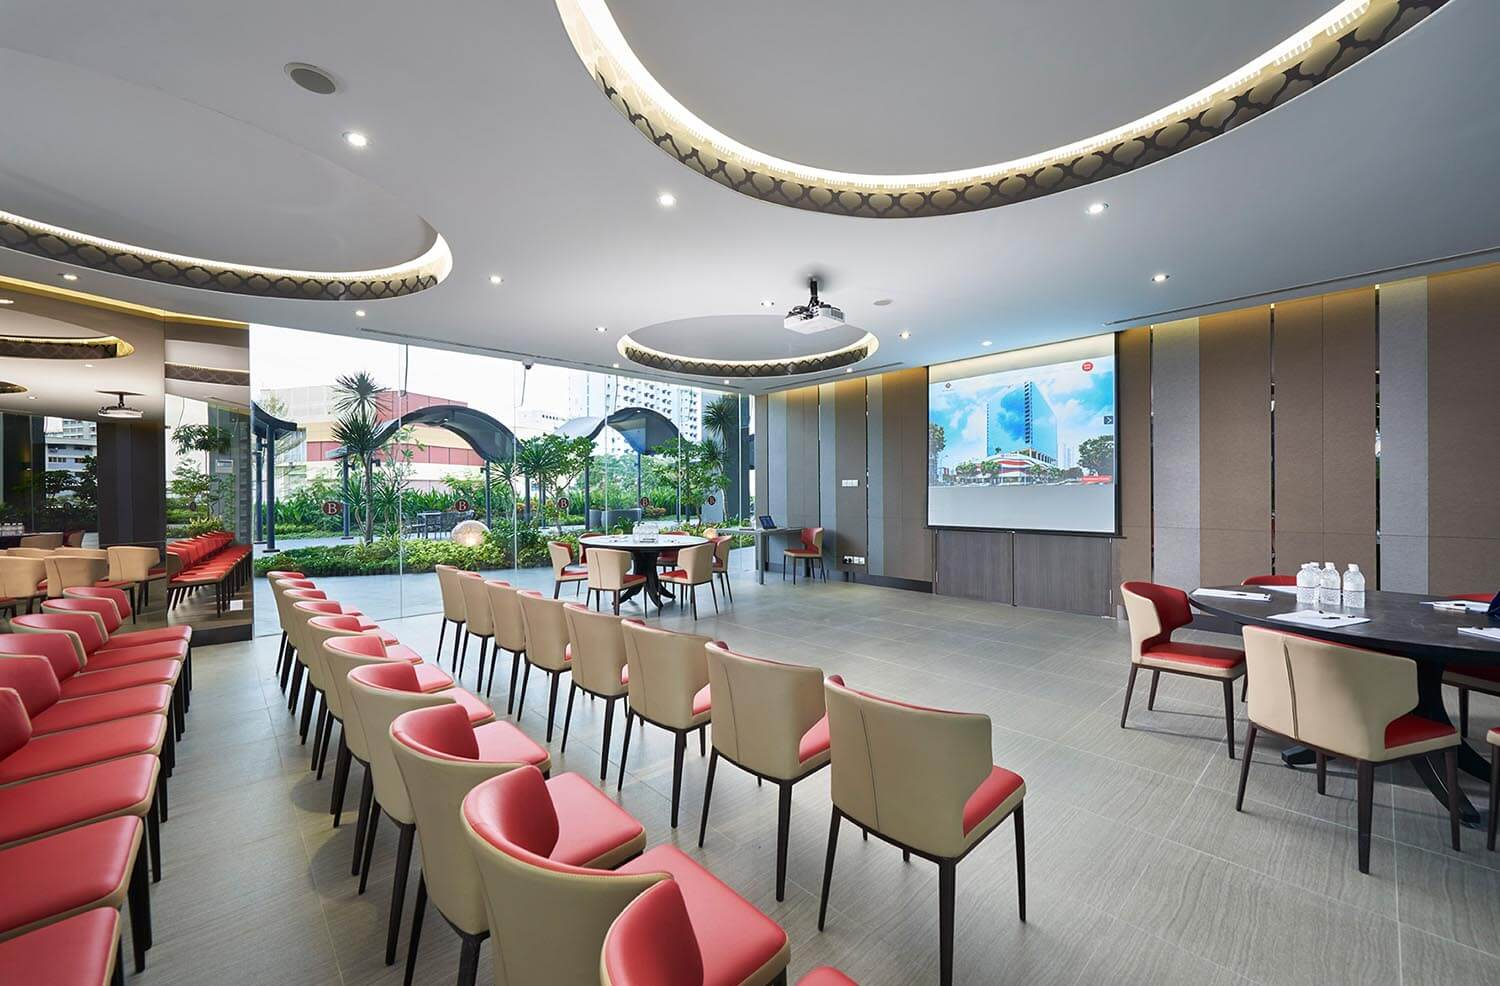 Hotel Boss conference room